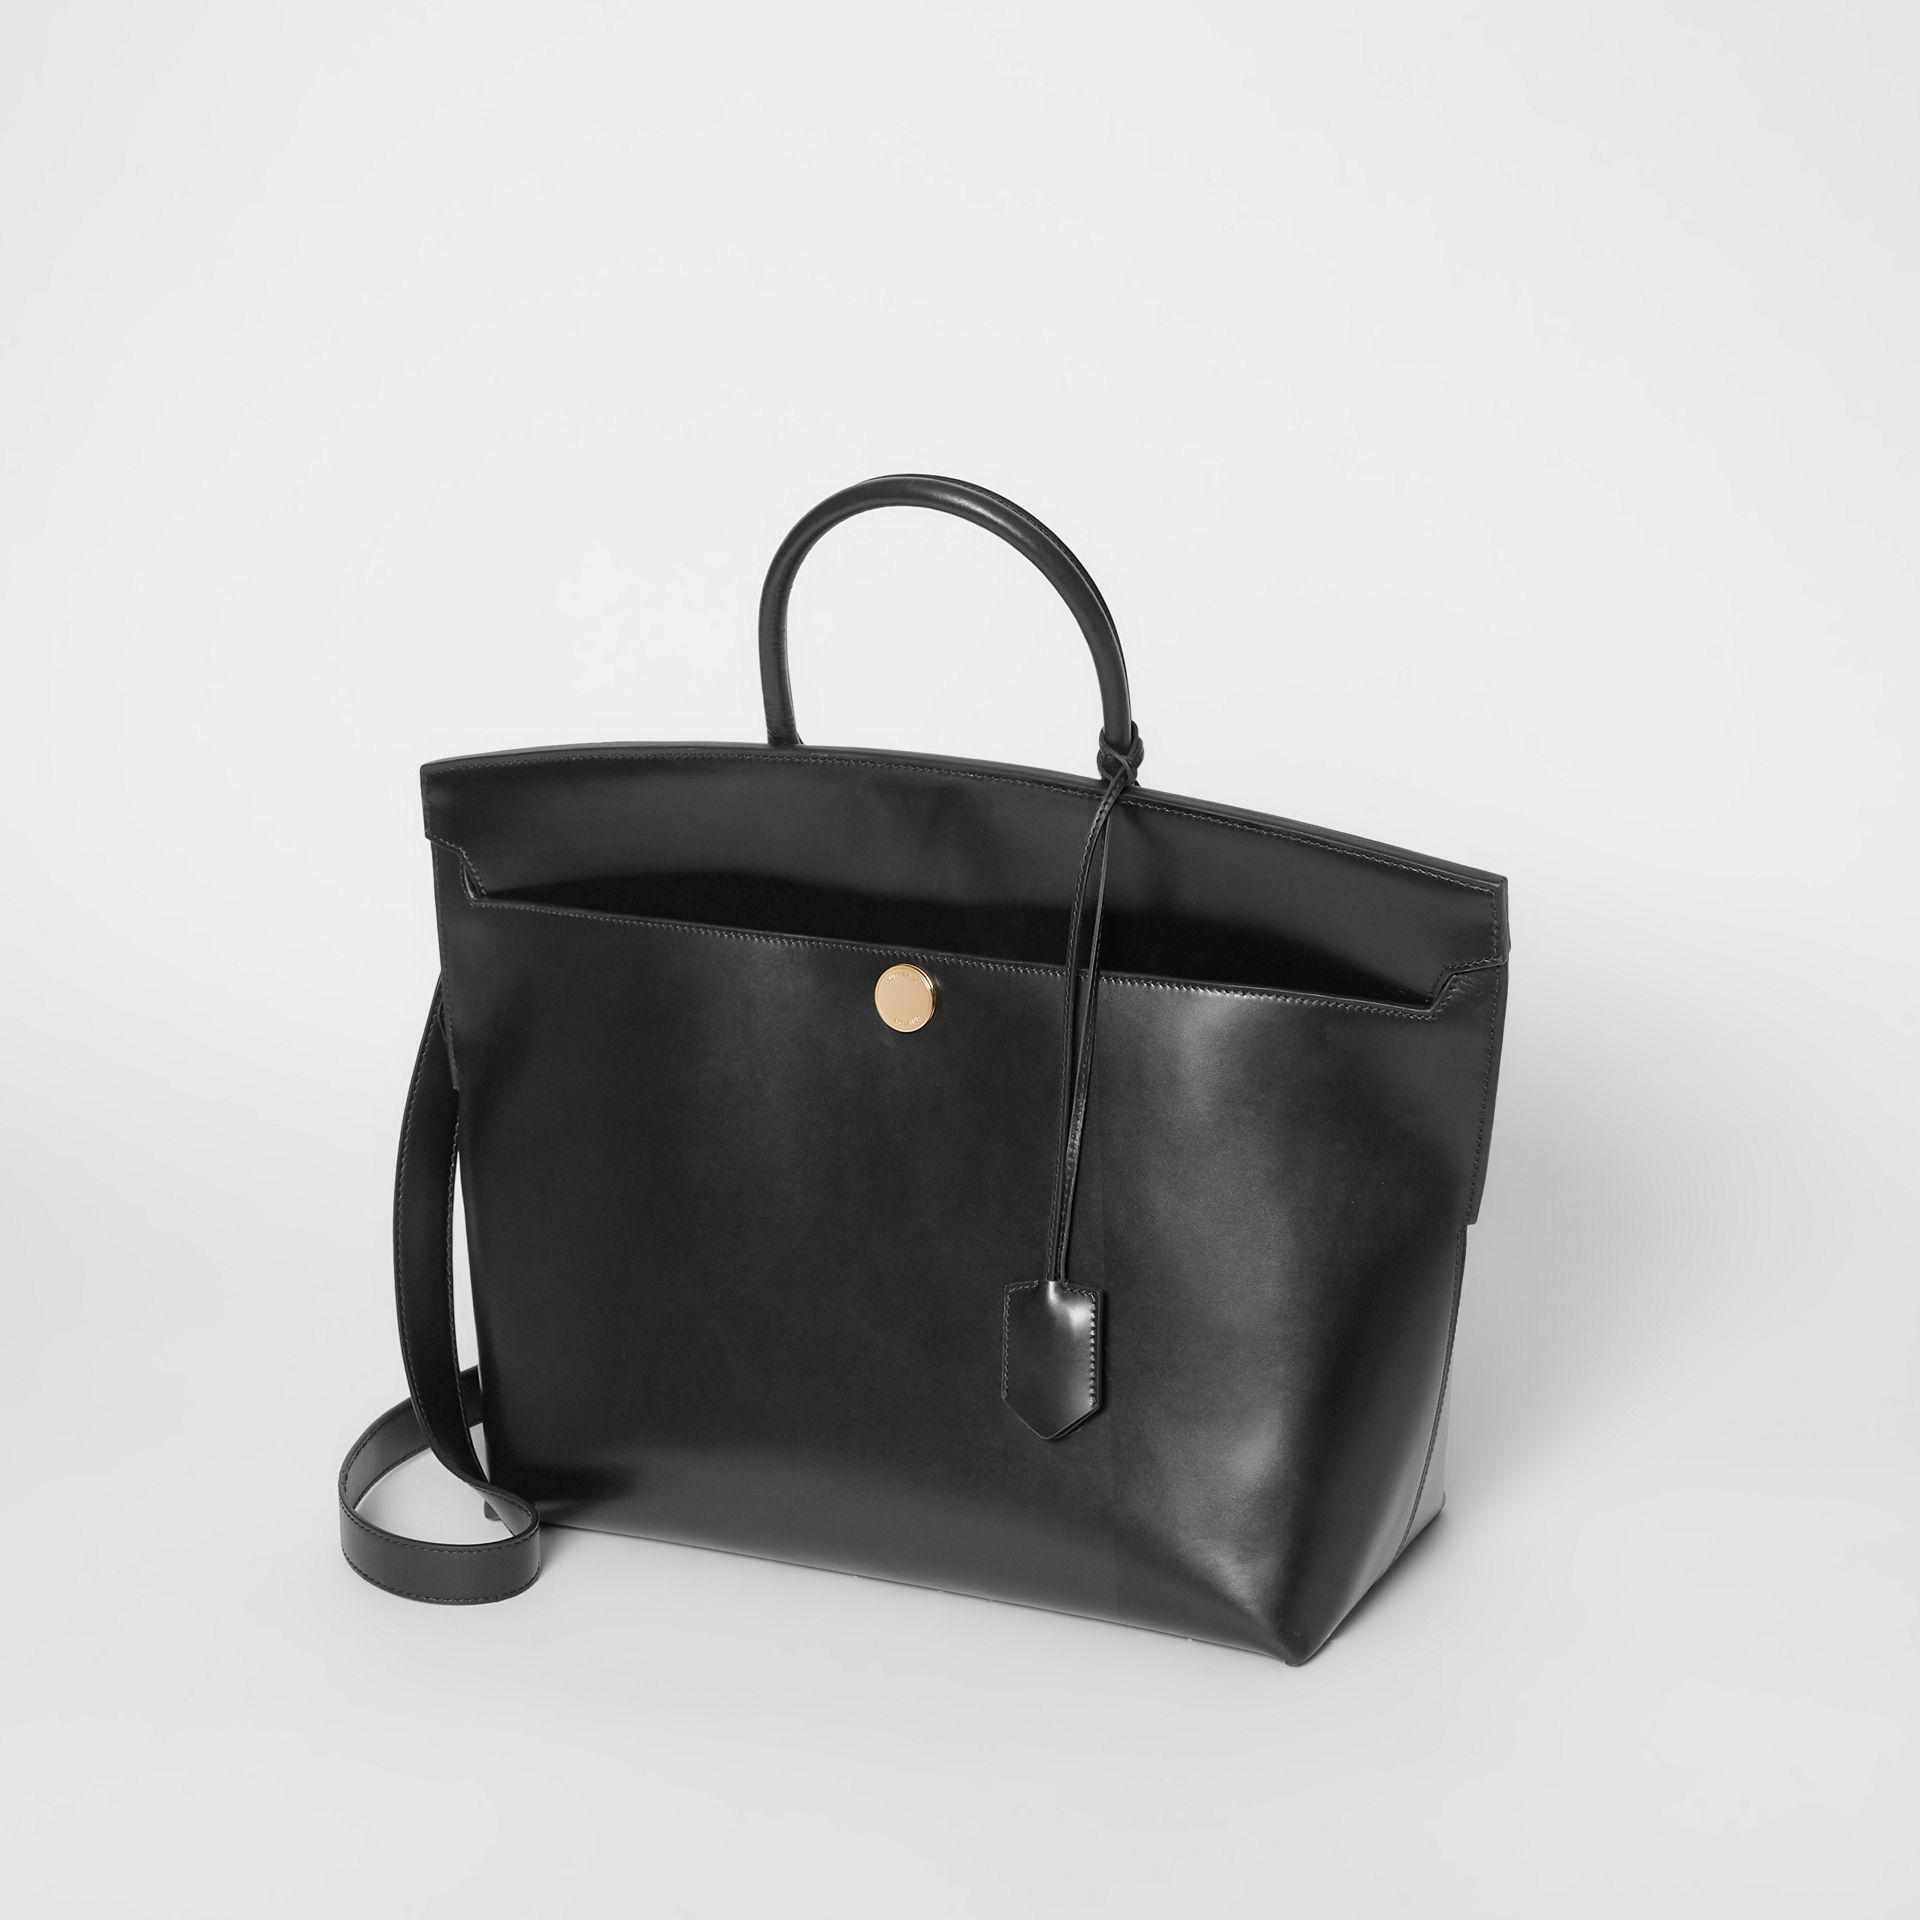 Leather Society Top Handle Bag in Black - Women | Burberry United States - gallery image 3